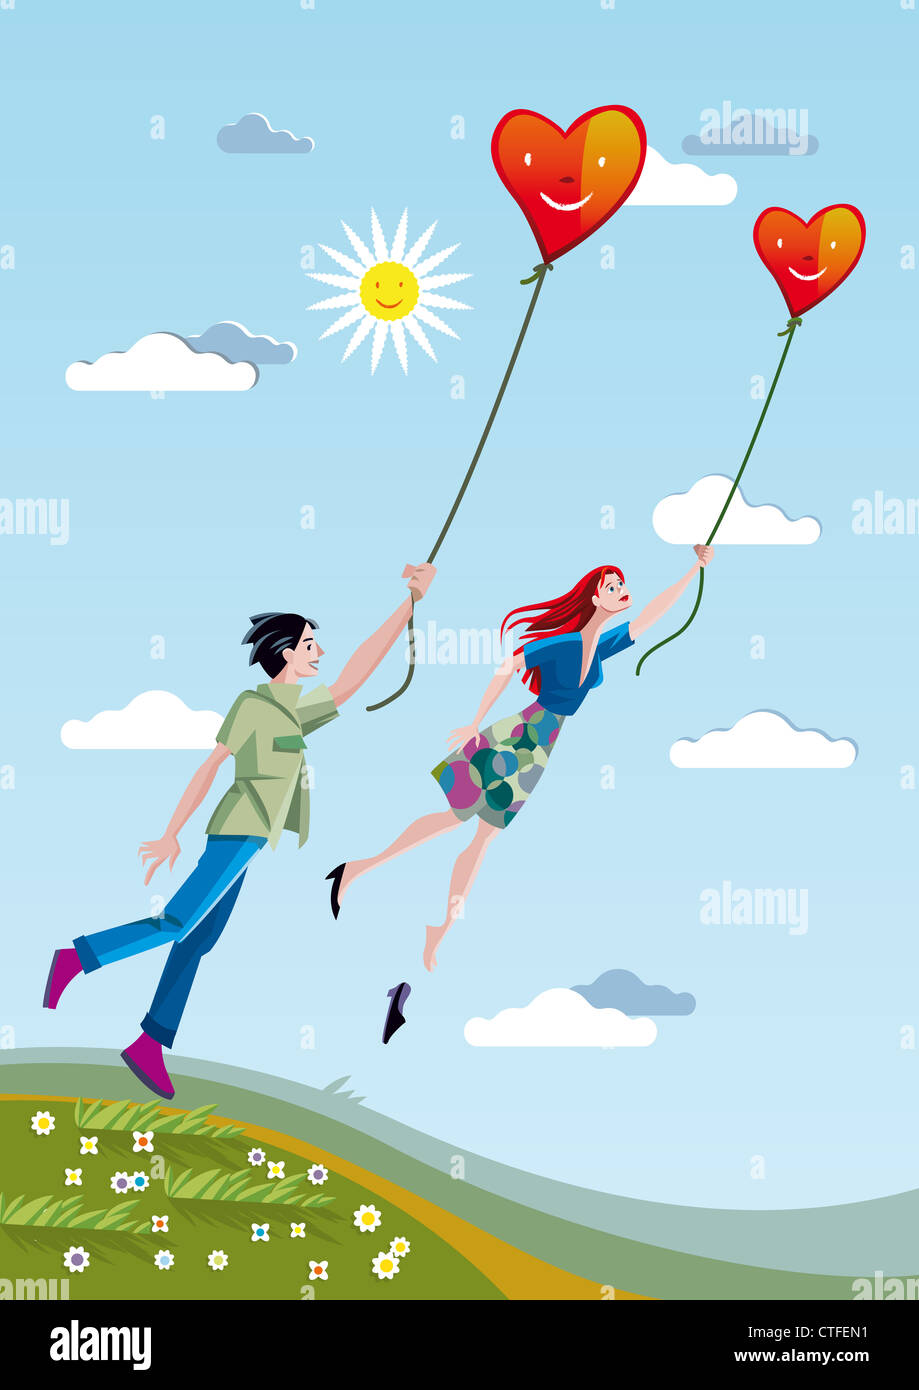 A man and a woman towering over the fields holding a heart tied with strings. - Stock Image